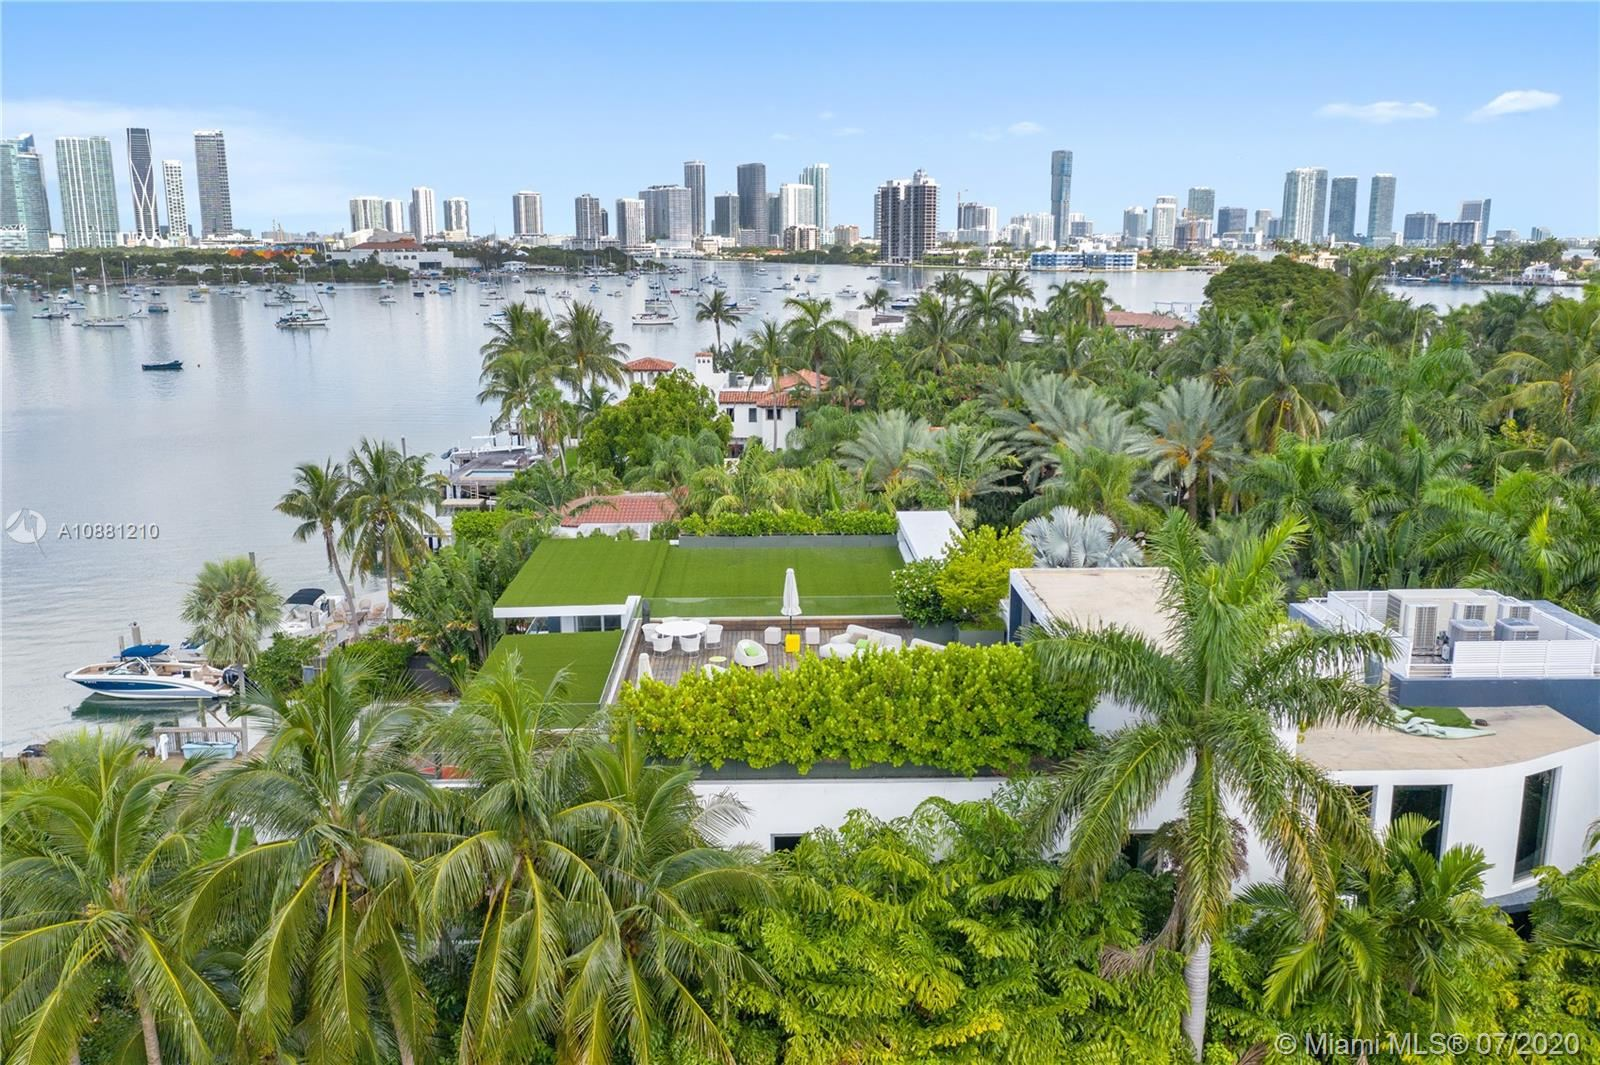 Photo 44 of Listing MLS a10881210 in 370 S Hibiscus Dr Miami Beach FL 33139